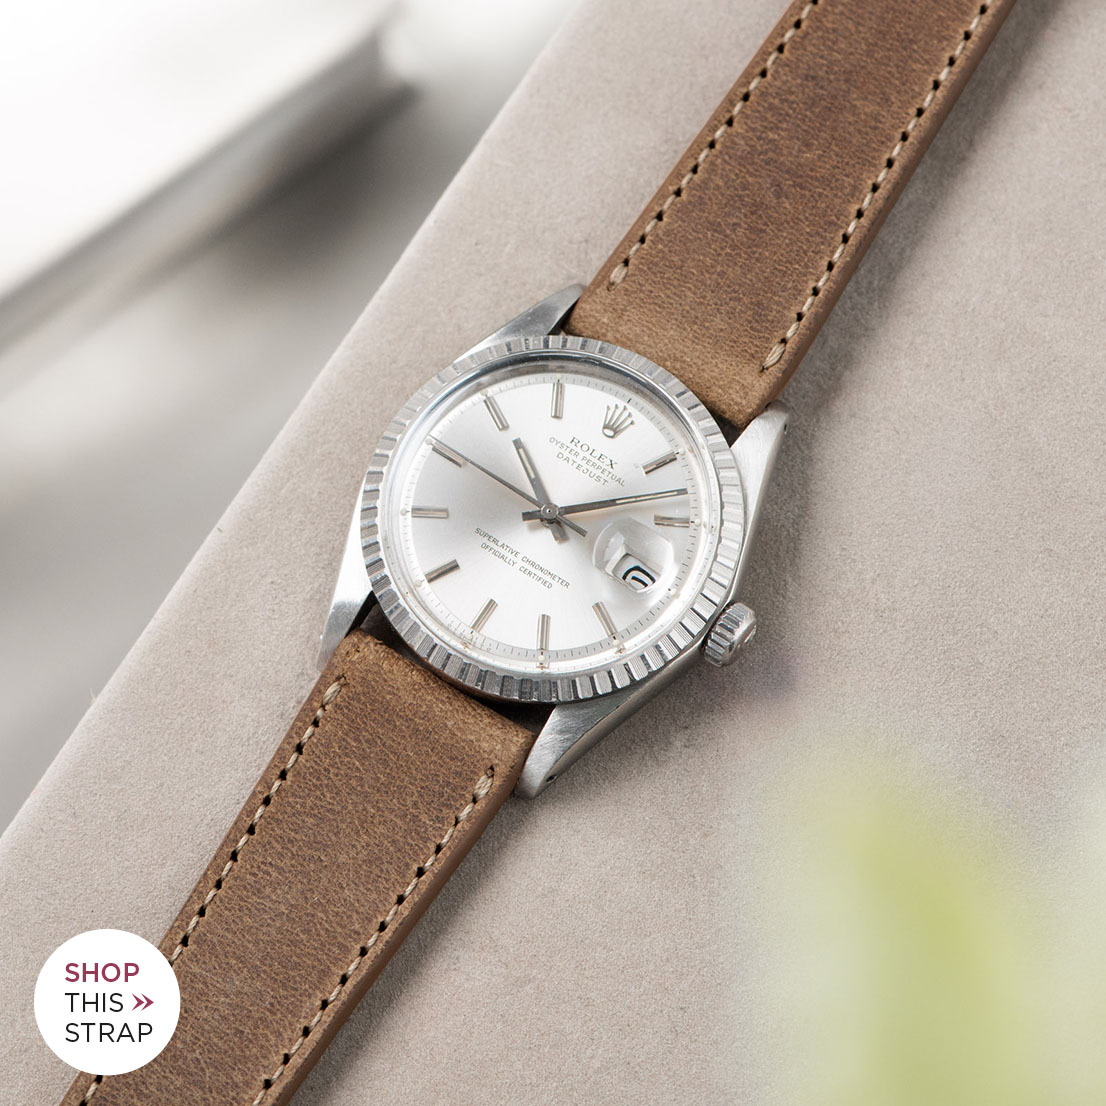 Bulang and sons_Strap Guide_Rolex Datejust Silverdial 1601 1603 1600 1630_CINNAMON BROWN LEATHER WATCH STRAP